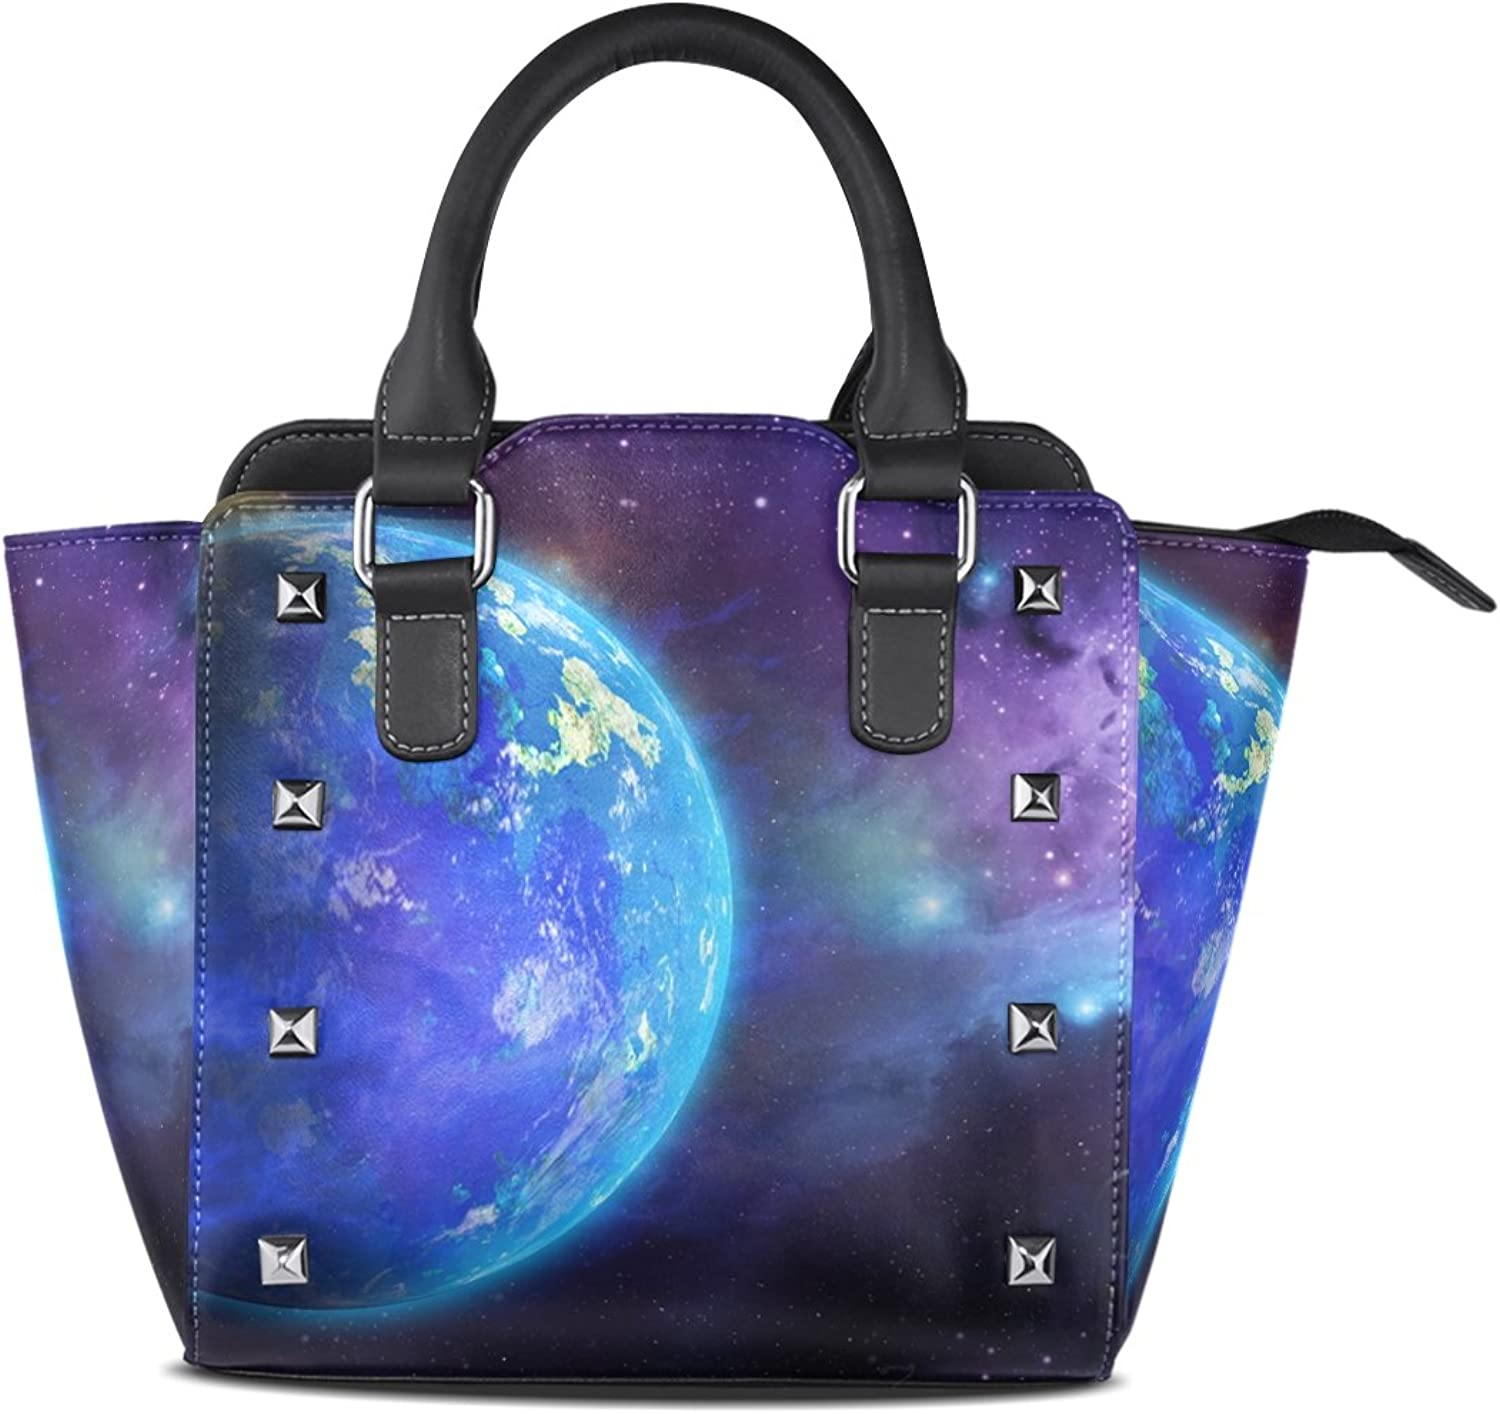 My Little Nest Women's Top Handle Satchel Handbag Ocean Planets and Stars Ladies PU Leather Shoulder Bag Crossbody Bag